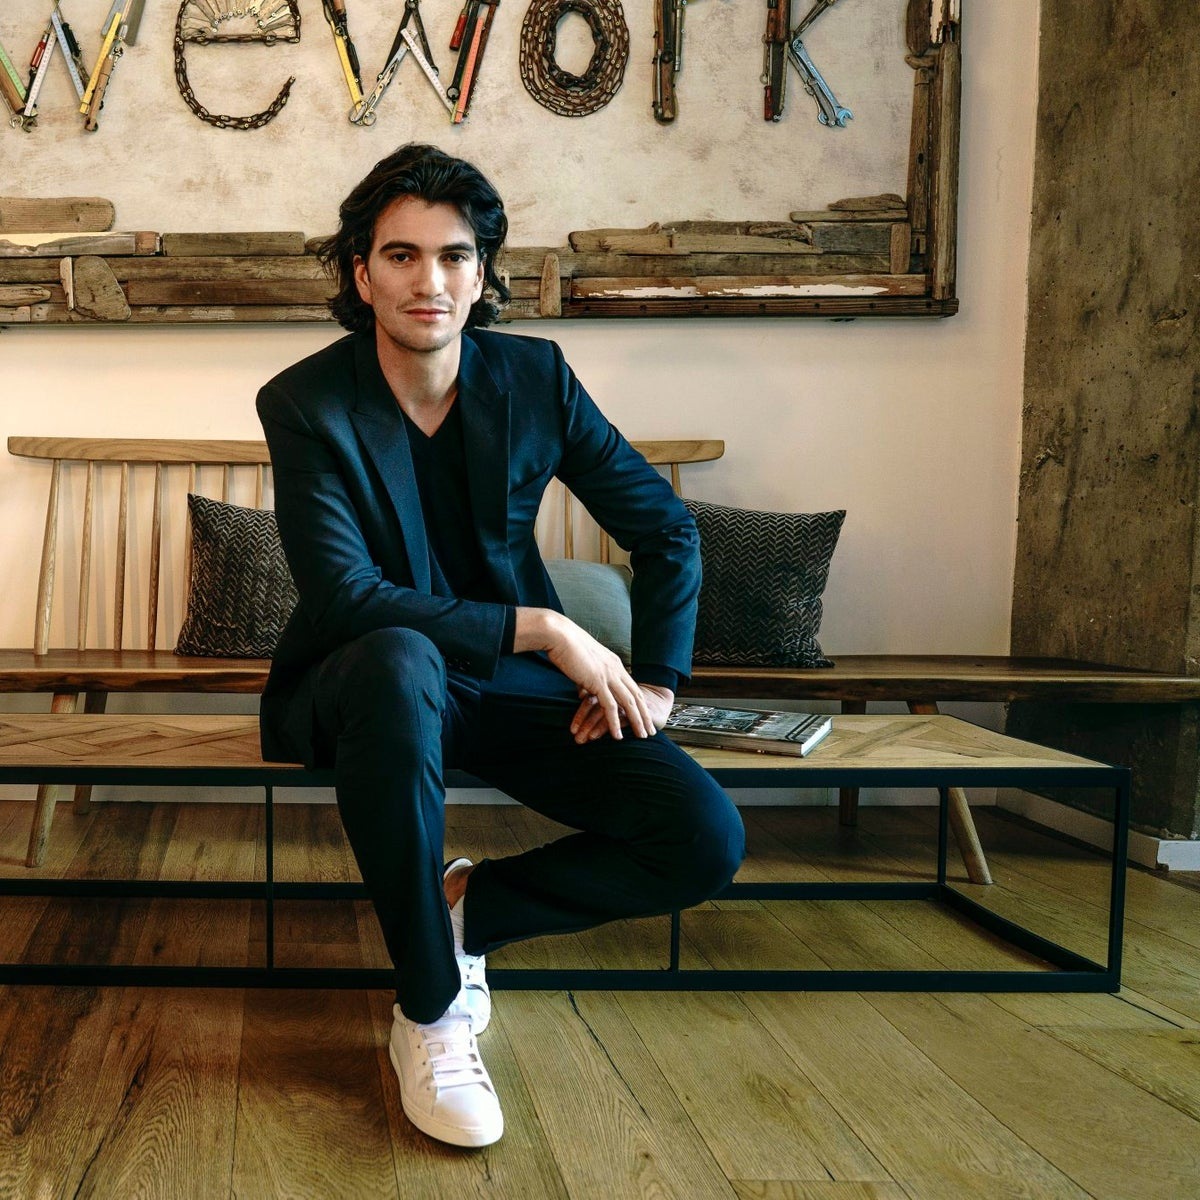 Adam Neumann. According to the Forbes rankings in February, his assets are estimated at $2.4 billion.